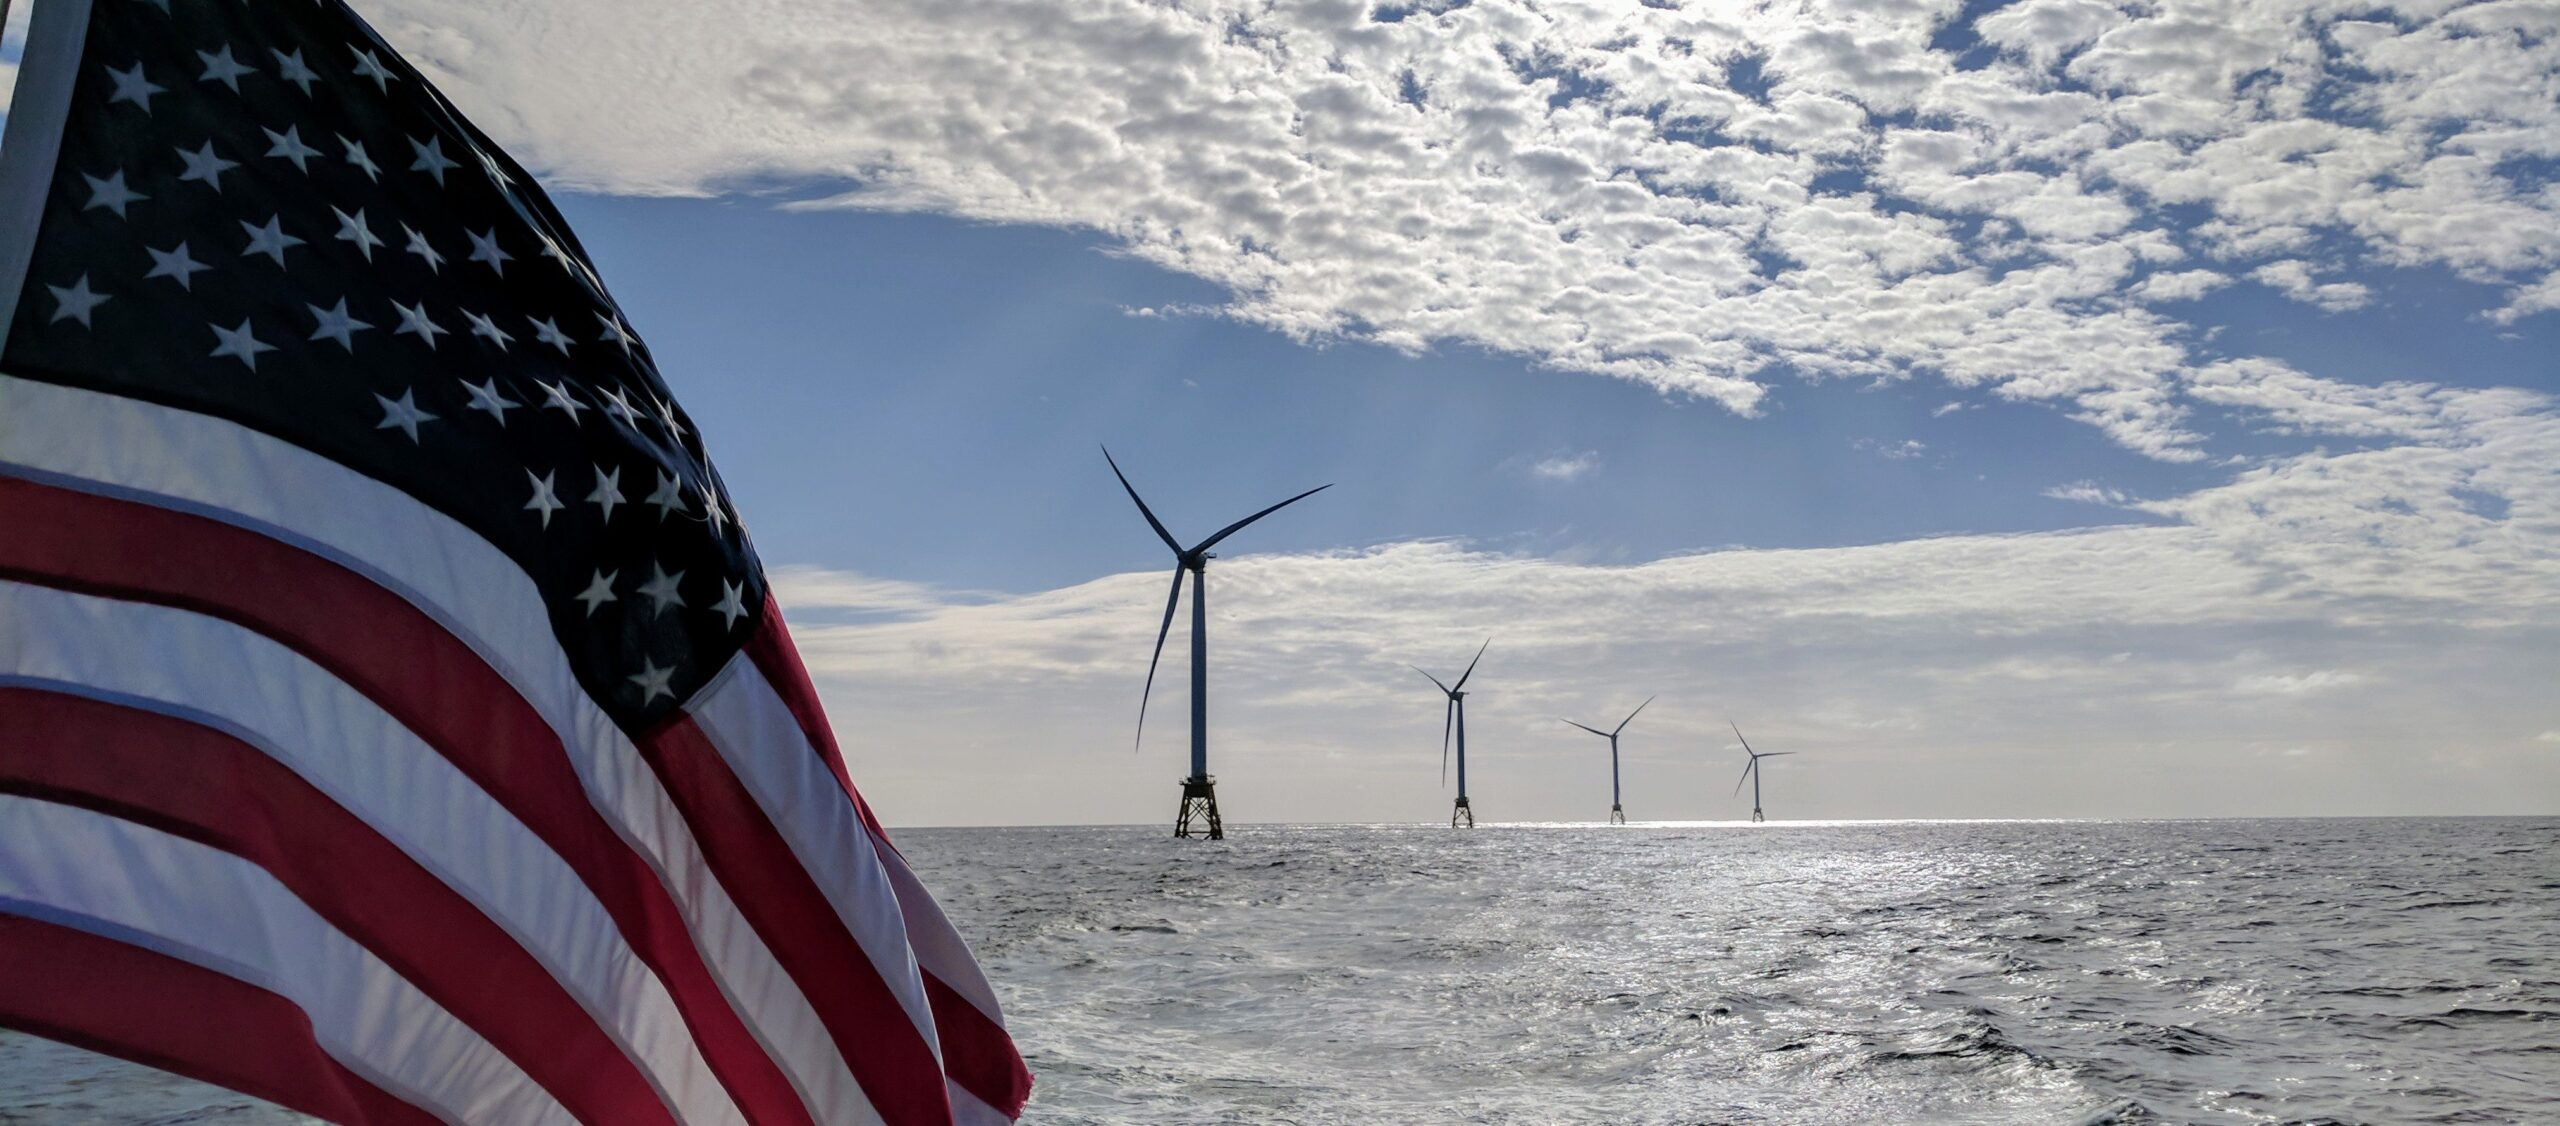 2021 kicks off with record growth for clean energy in the US